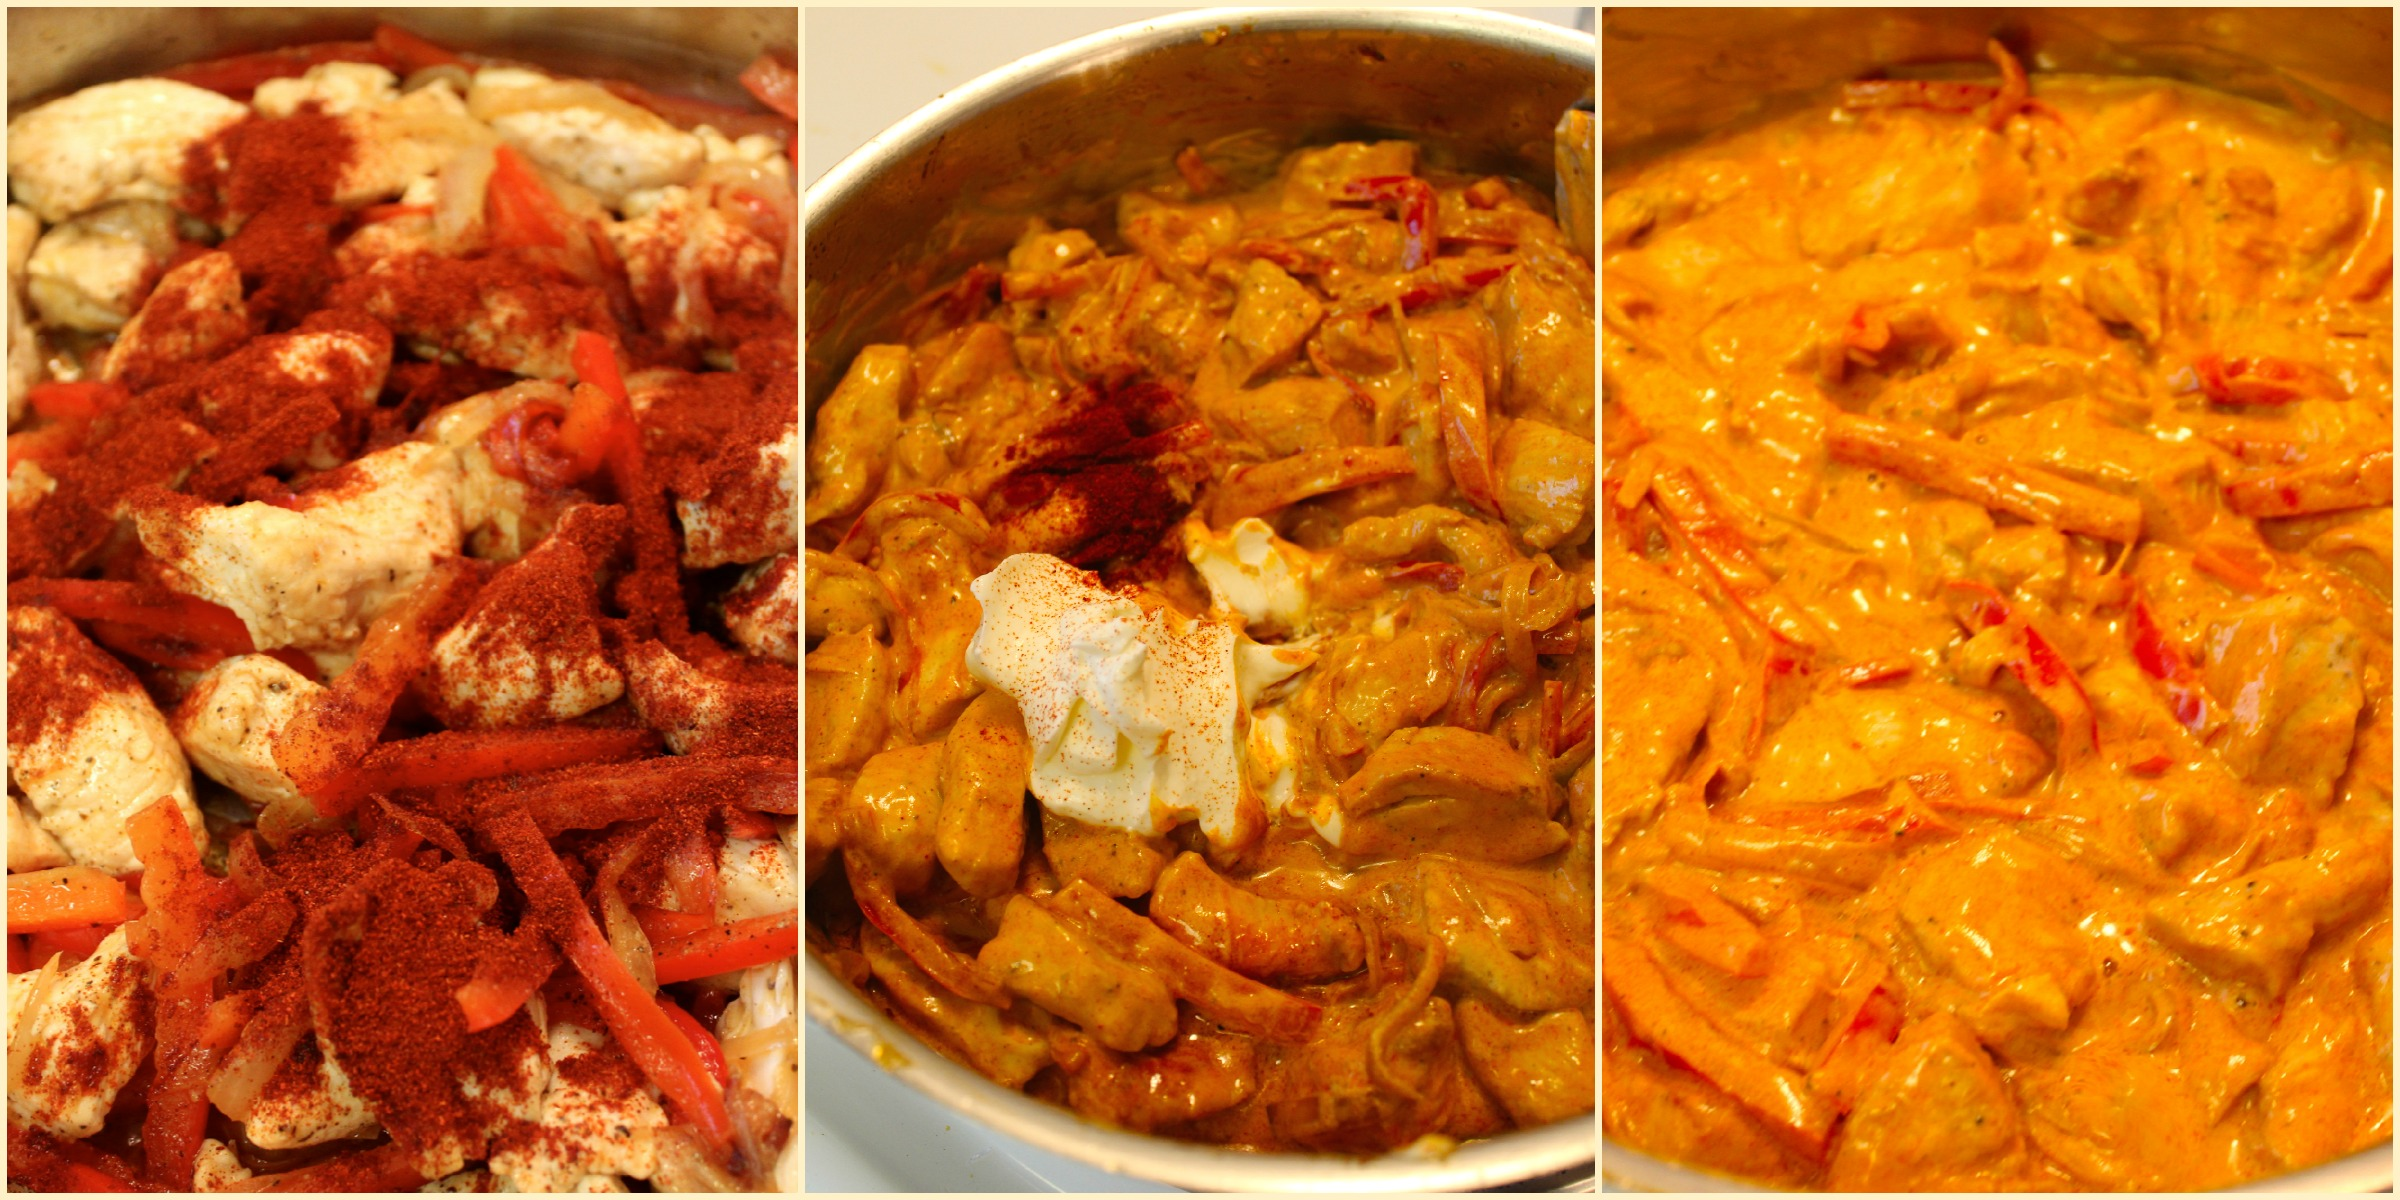 This Recipe Is Naturally Gluten Free Pictured With Egg Noodles Which Are Not So Prepare This Chicken Paprika Hungarian Chicken Paprikash With Gluten